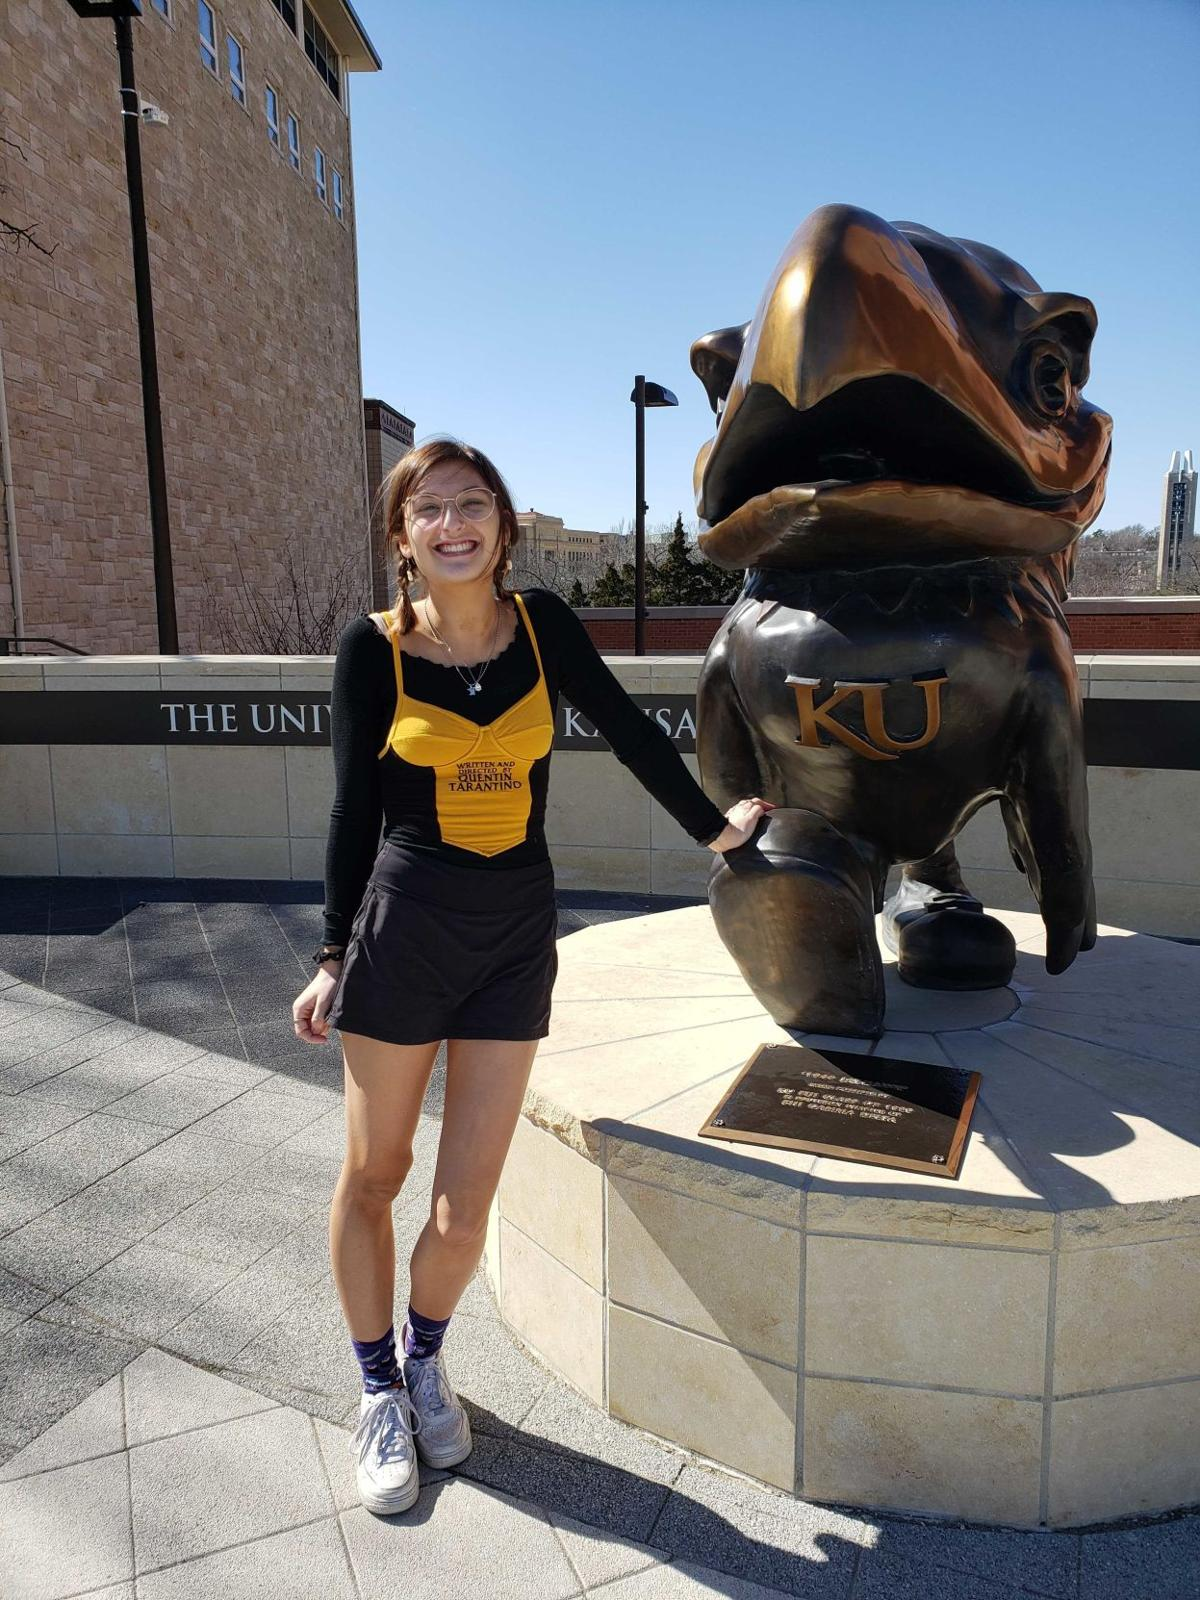 A woman stands next to a bronze Jayhawks statue